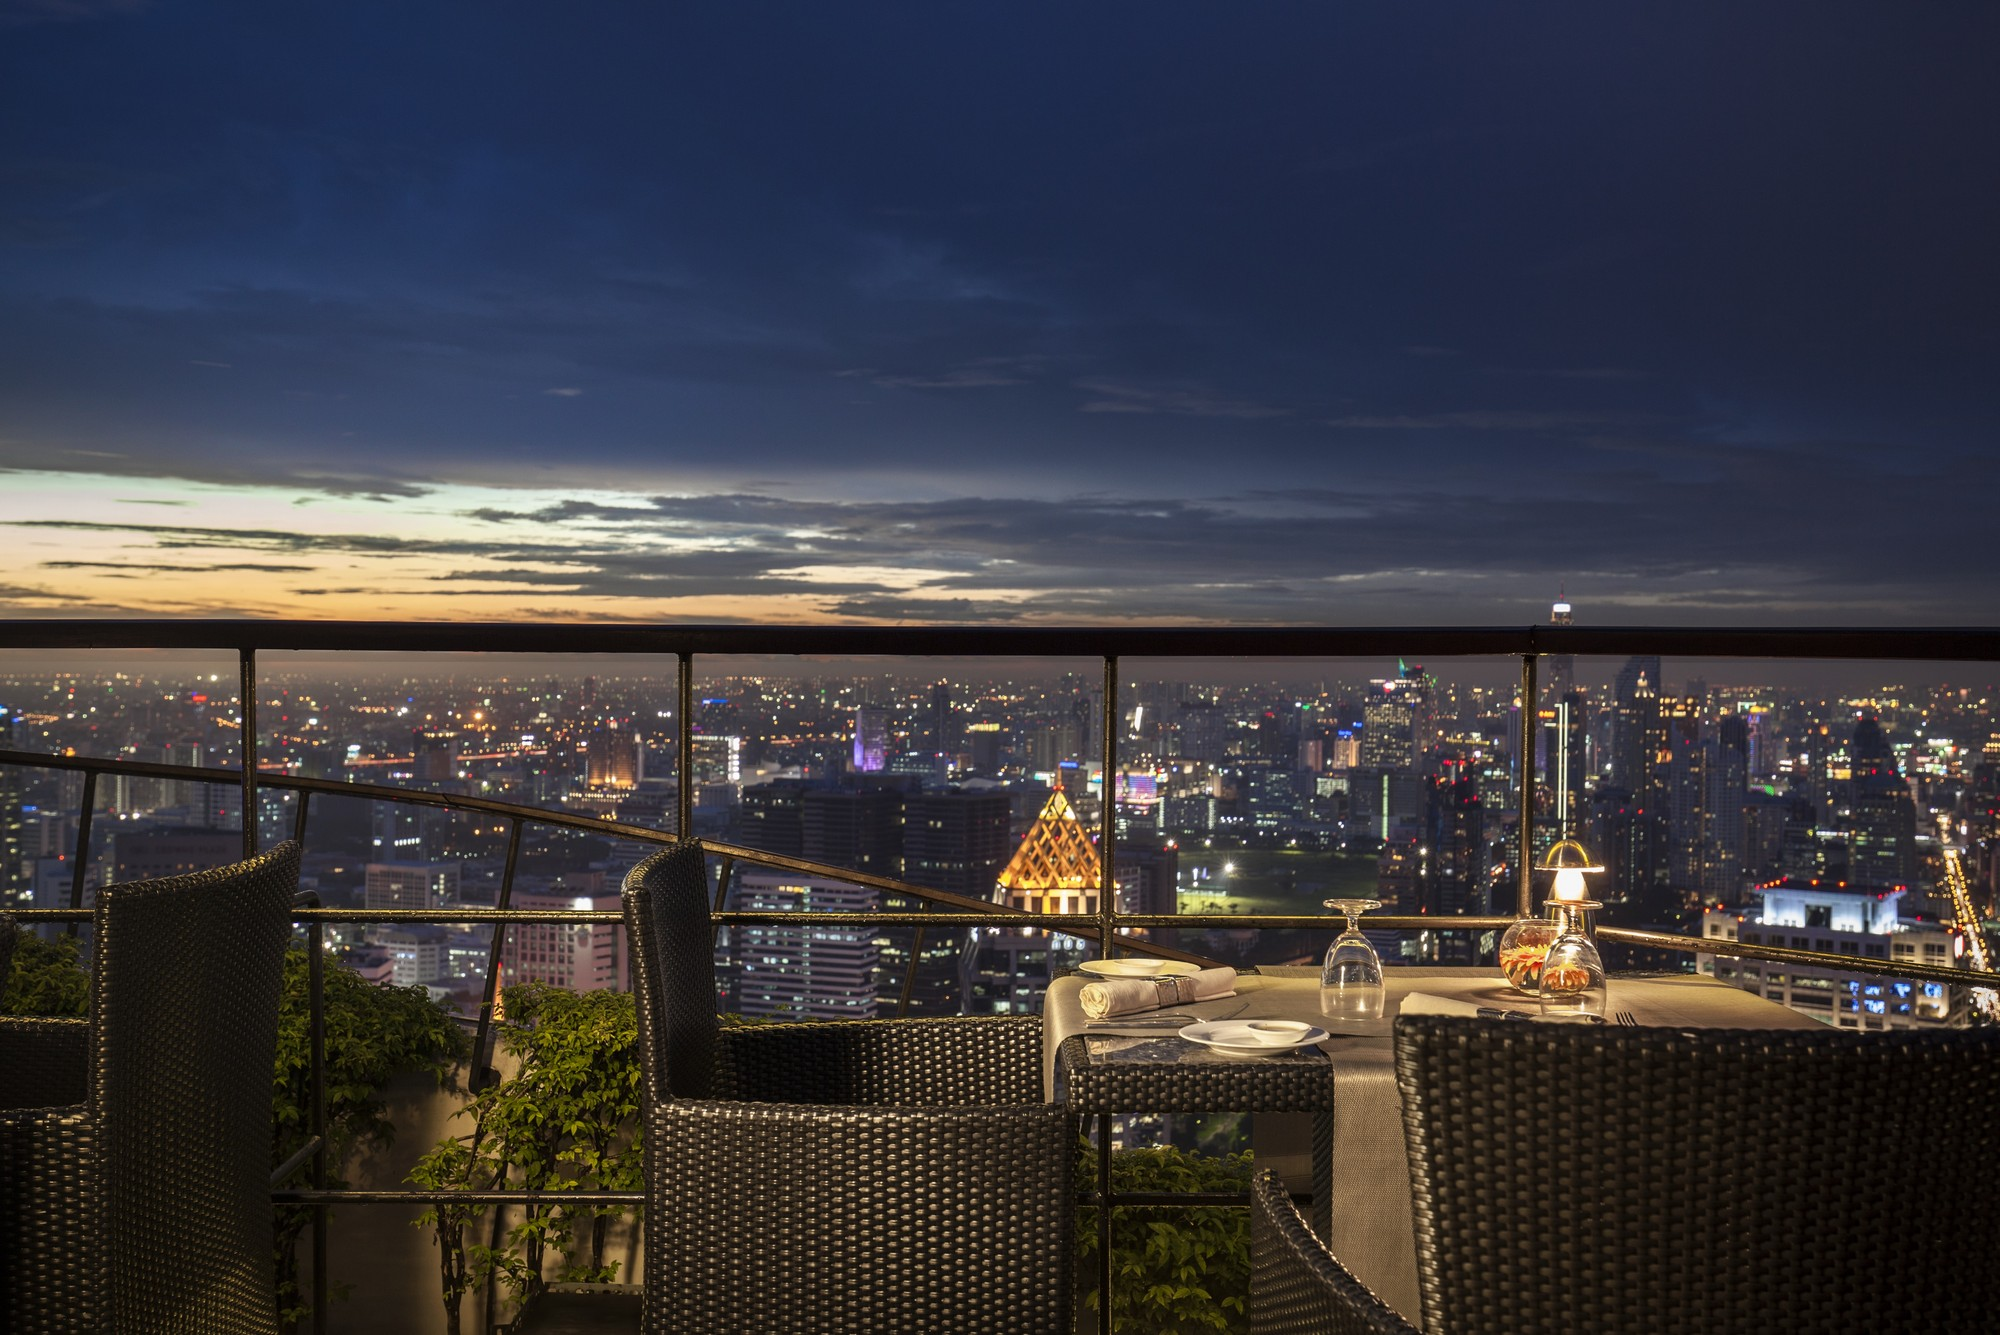 Vertigo Grill and Moon Bar 高空酒吧